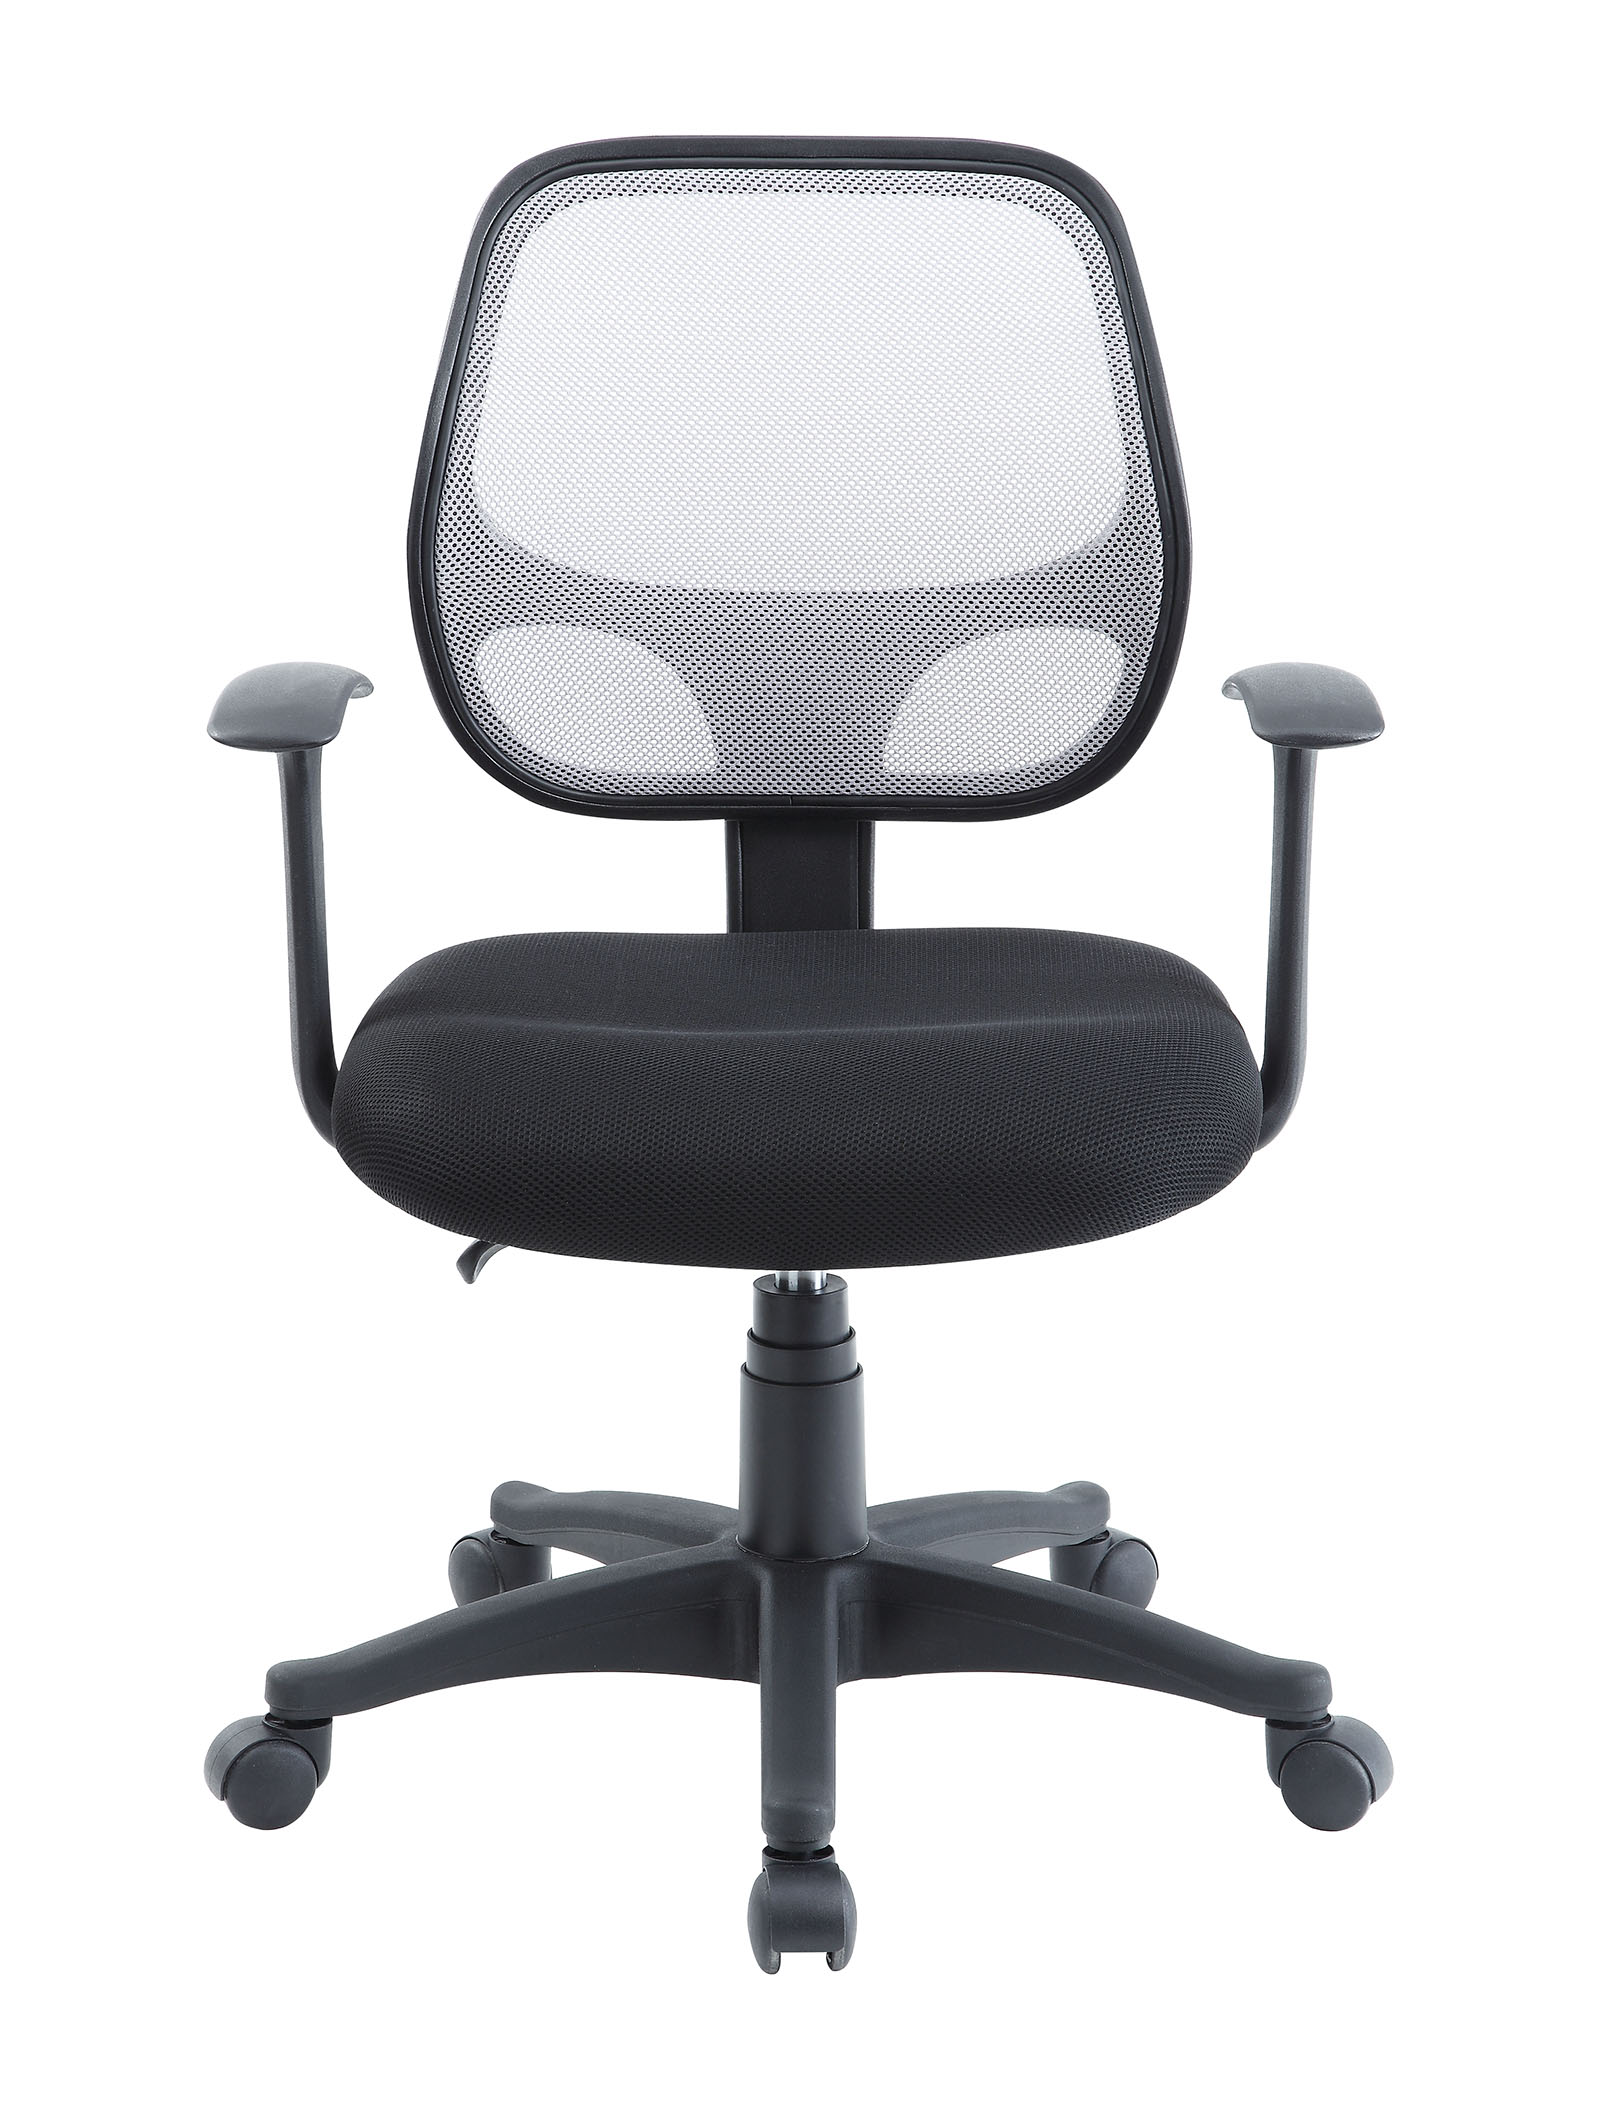 Mainstays Mesh Office Chairs With Arms Black With Gray Mesh Back Walmart Com Walmart Com